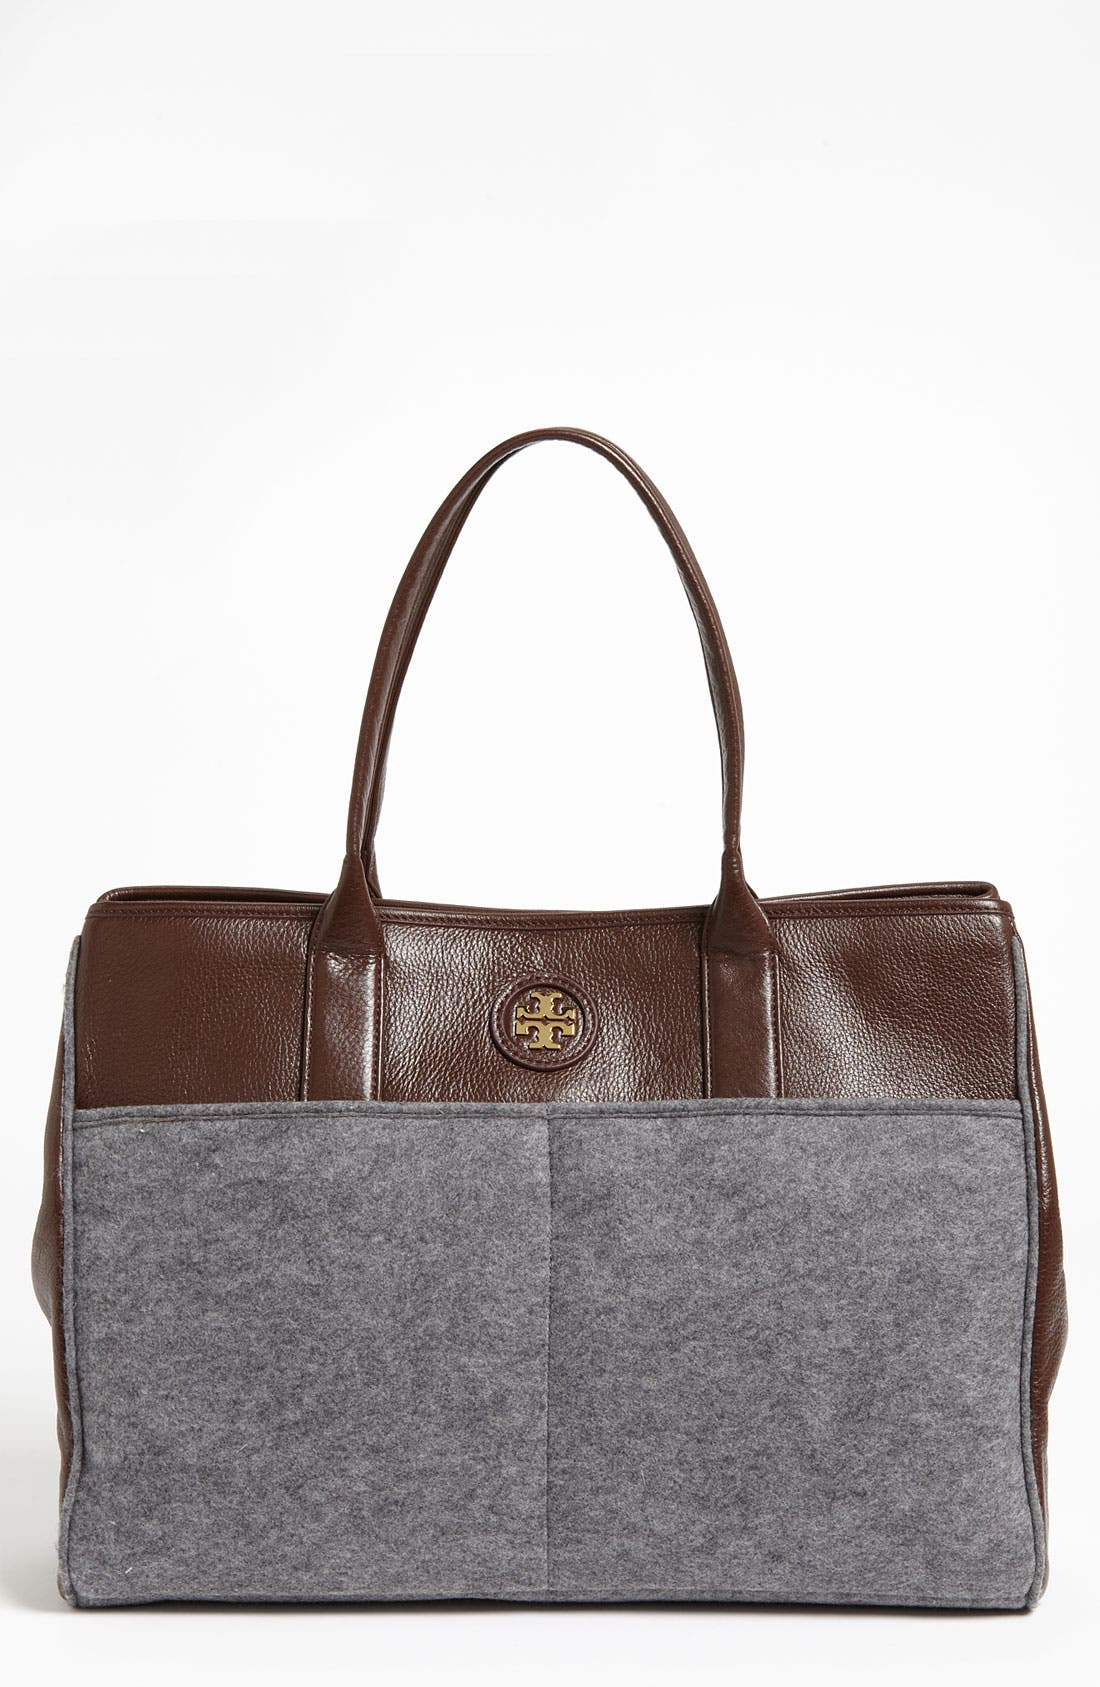 Alternate Image 1 Selected - Tory Burch 'Cameron' Tote